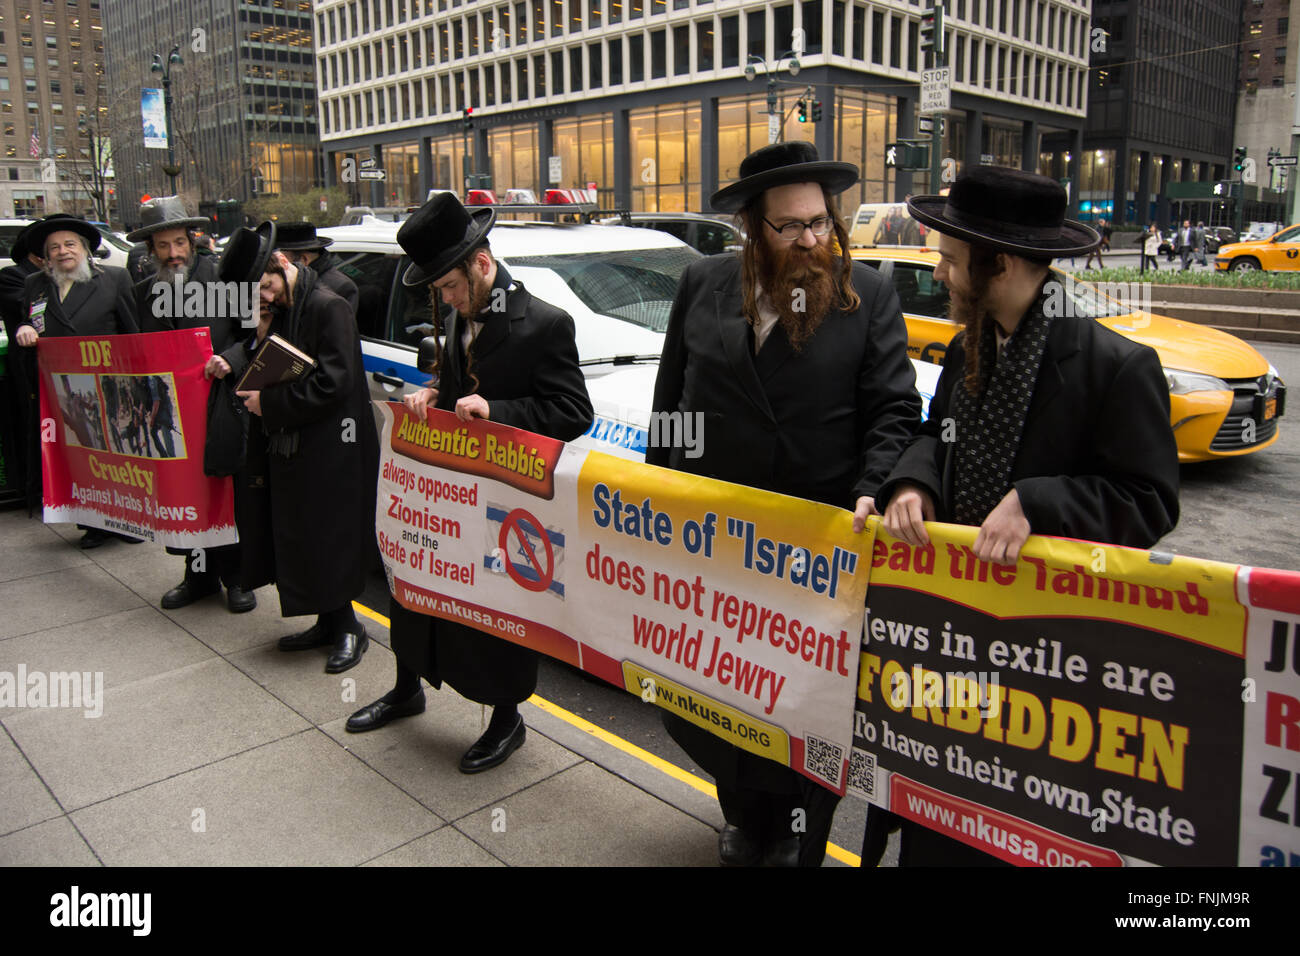 New York City, USA. 15th March 2016. Anti-Zionist Jews organized by the Neturei Karta International orthodox Jewish - Stock Image